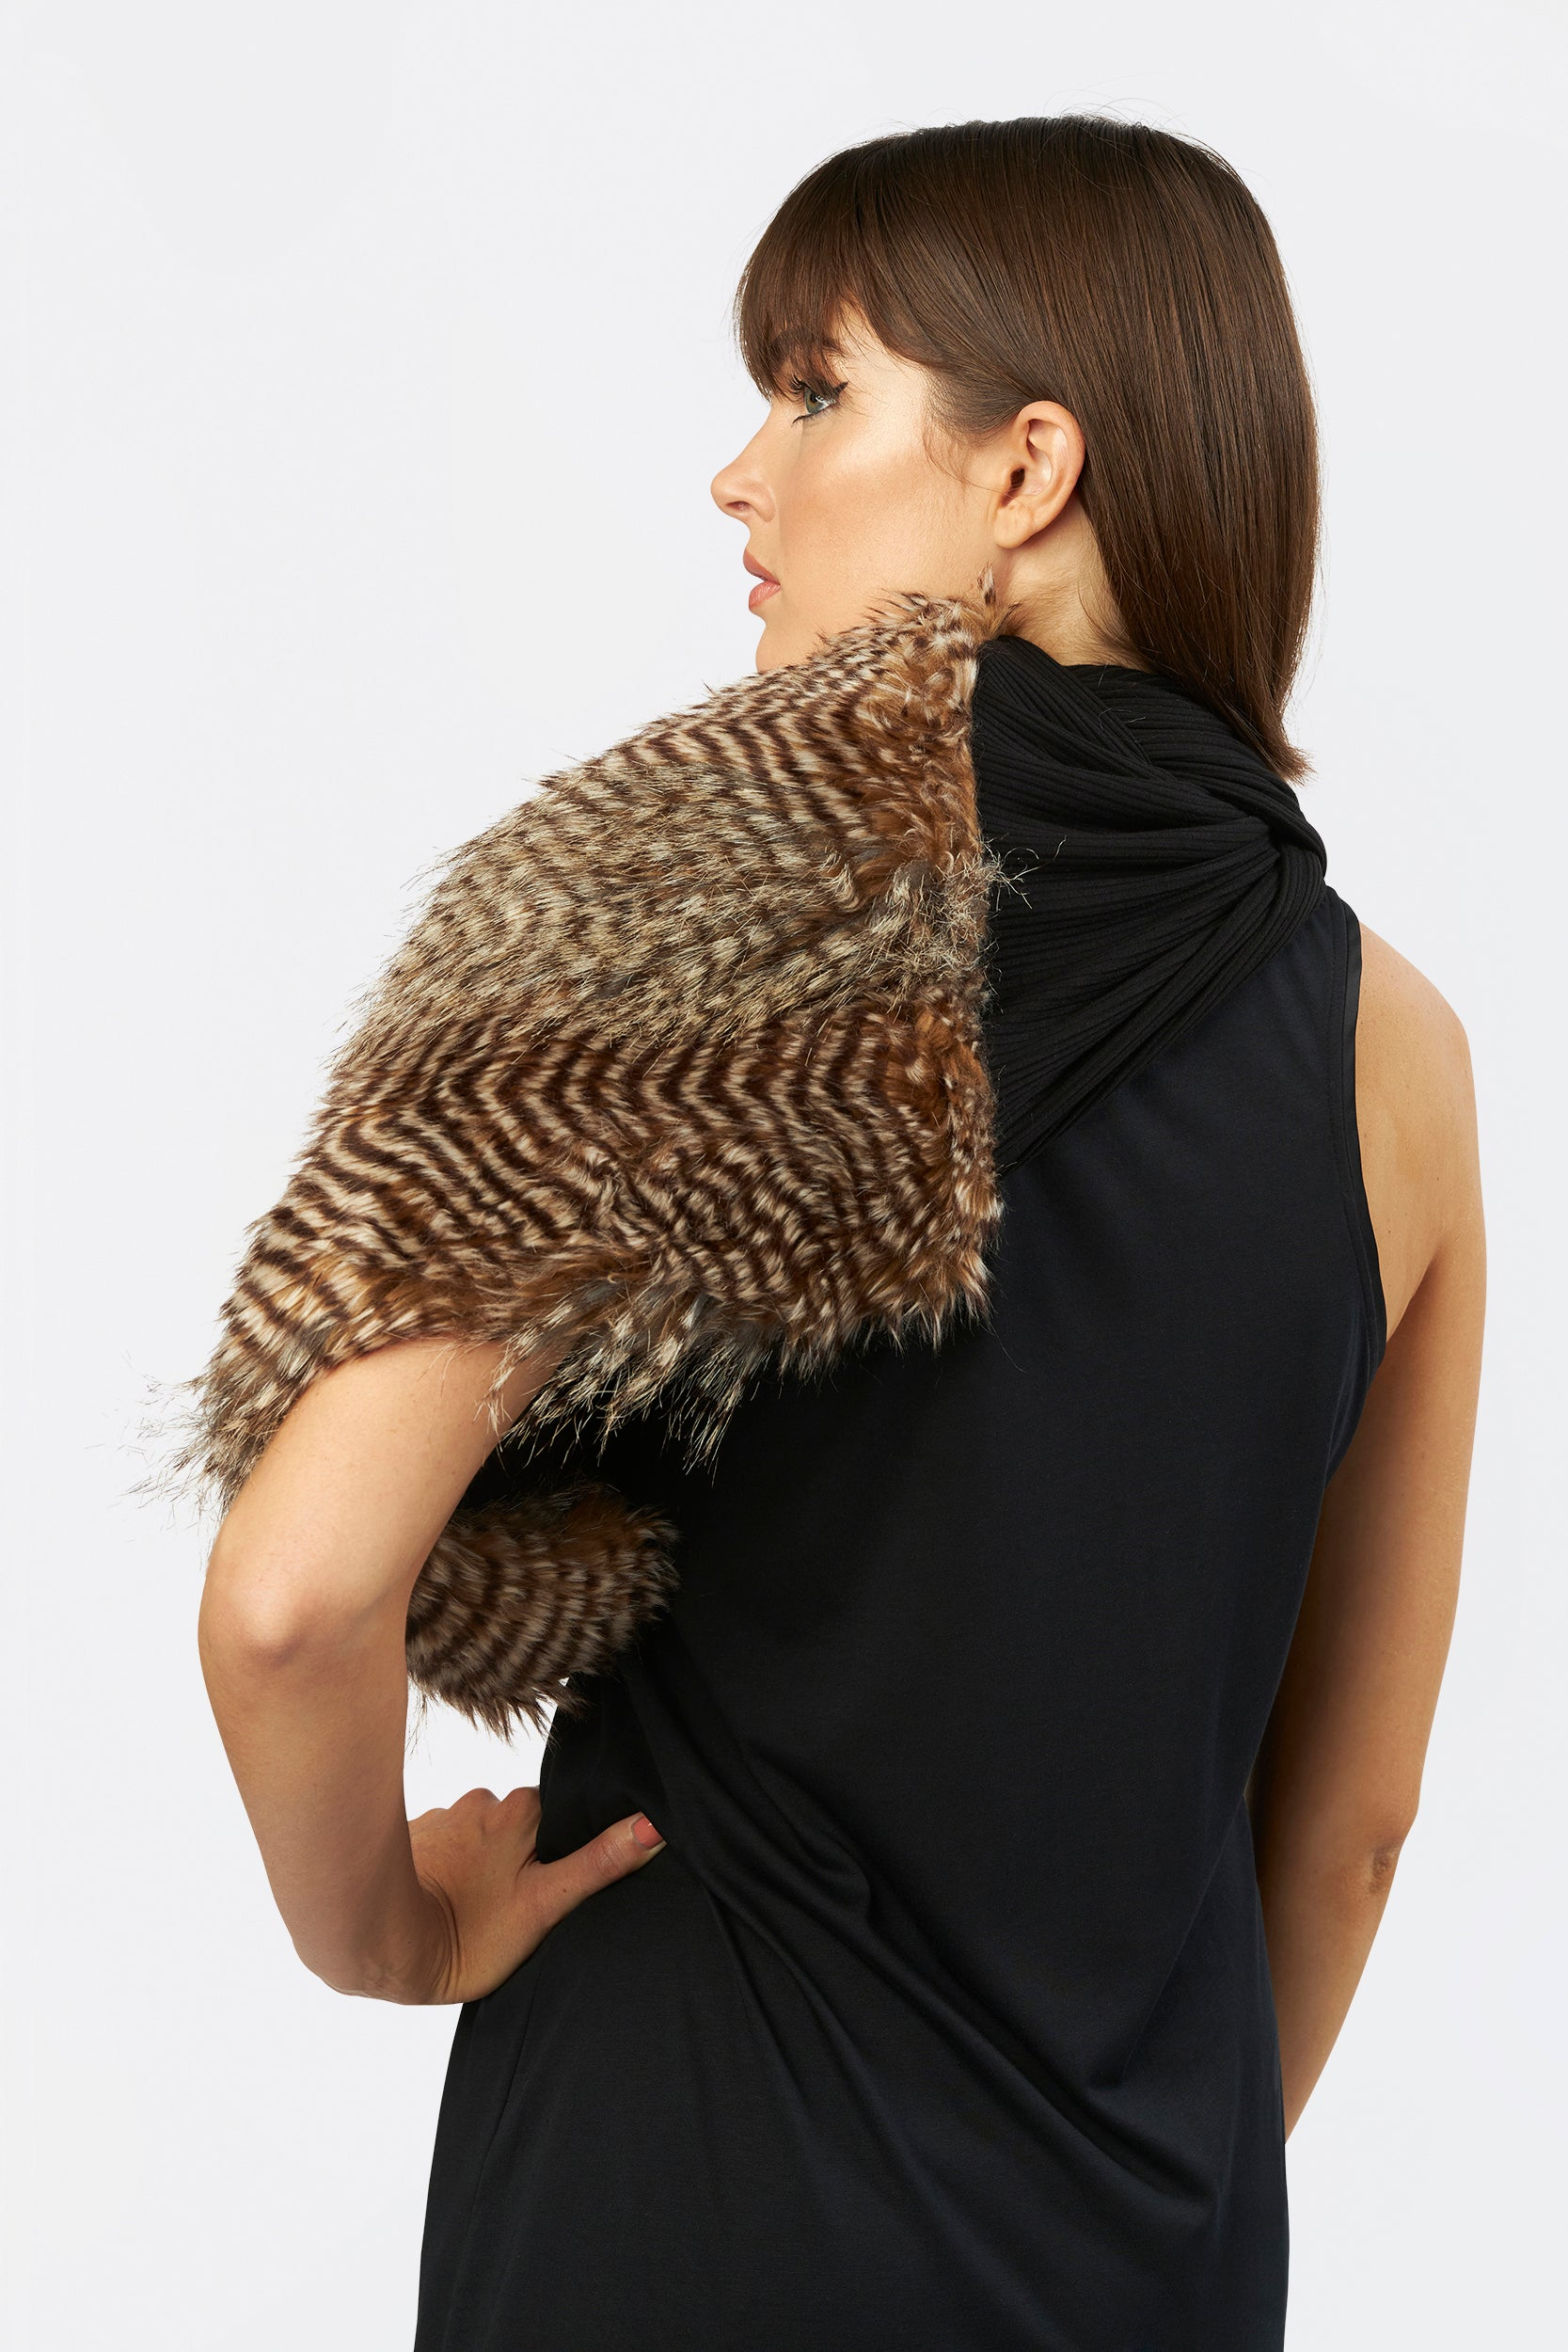 The Eternity Shrug by INLARKIN in animal print blends comfortable knit and luxurious faux fur